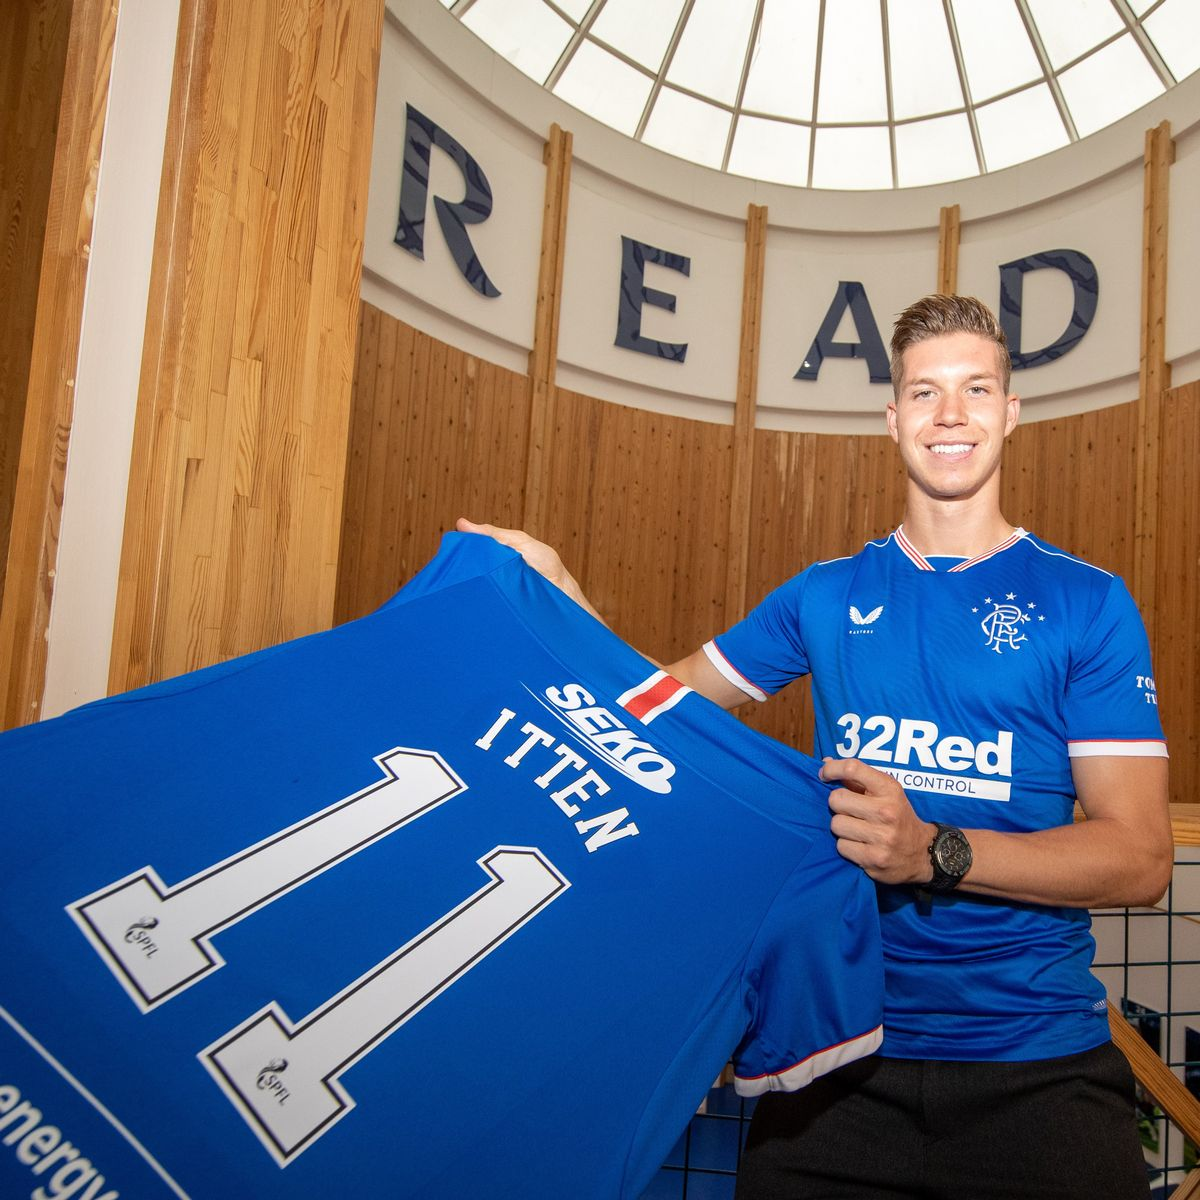 Rangers splash around £13M – is there more to come?